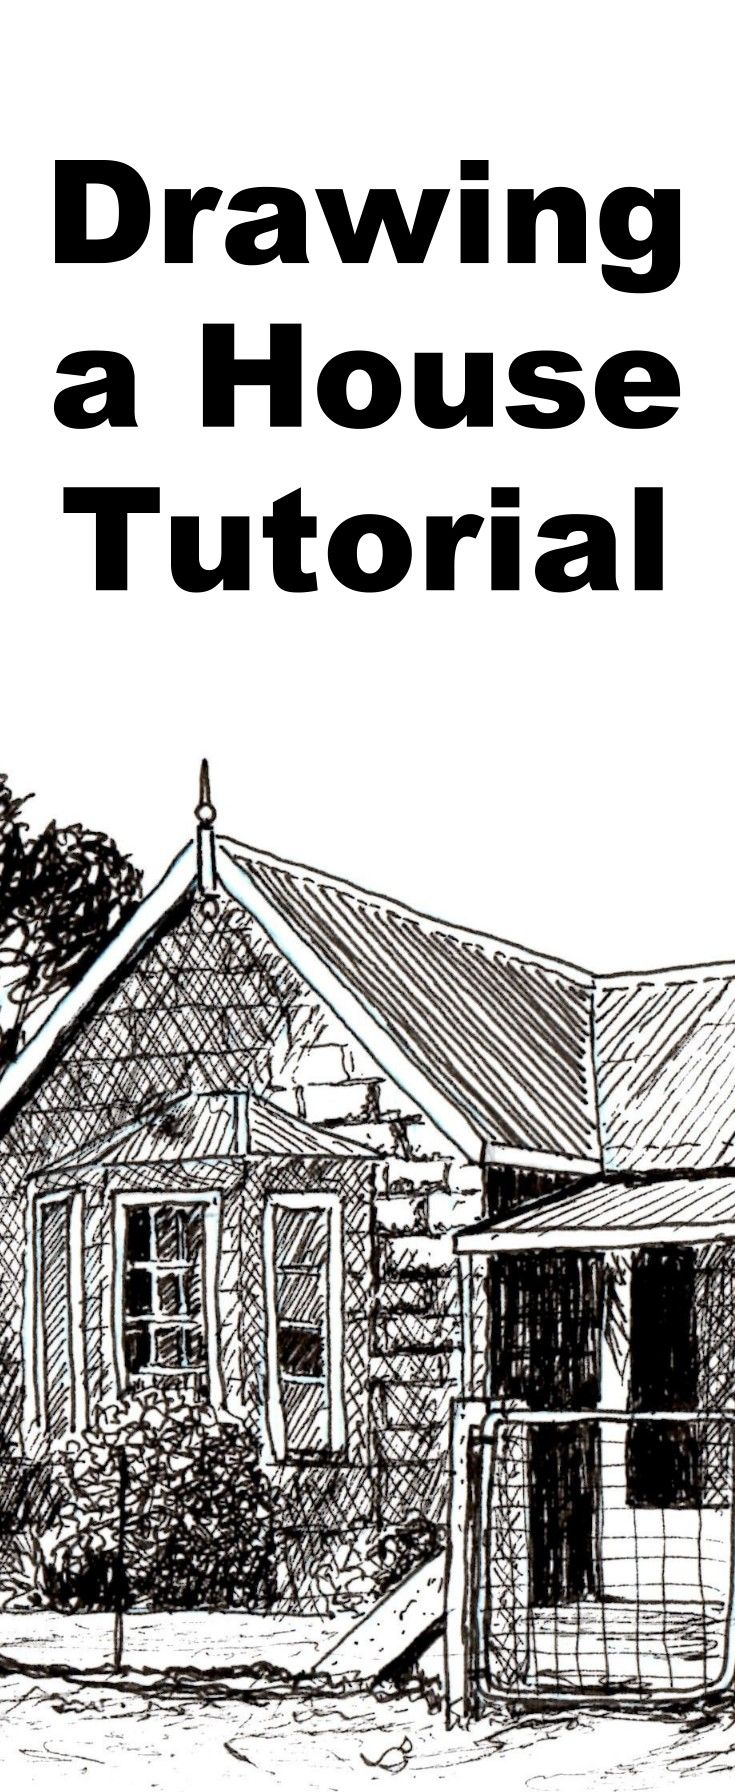 Learn to draw buildings and houses with this pen and ink